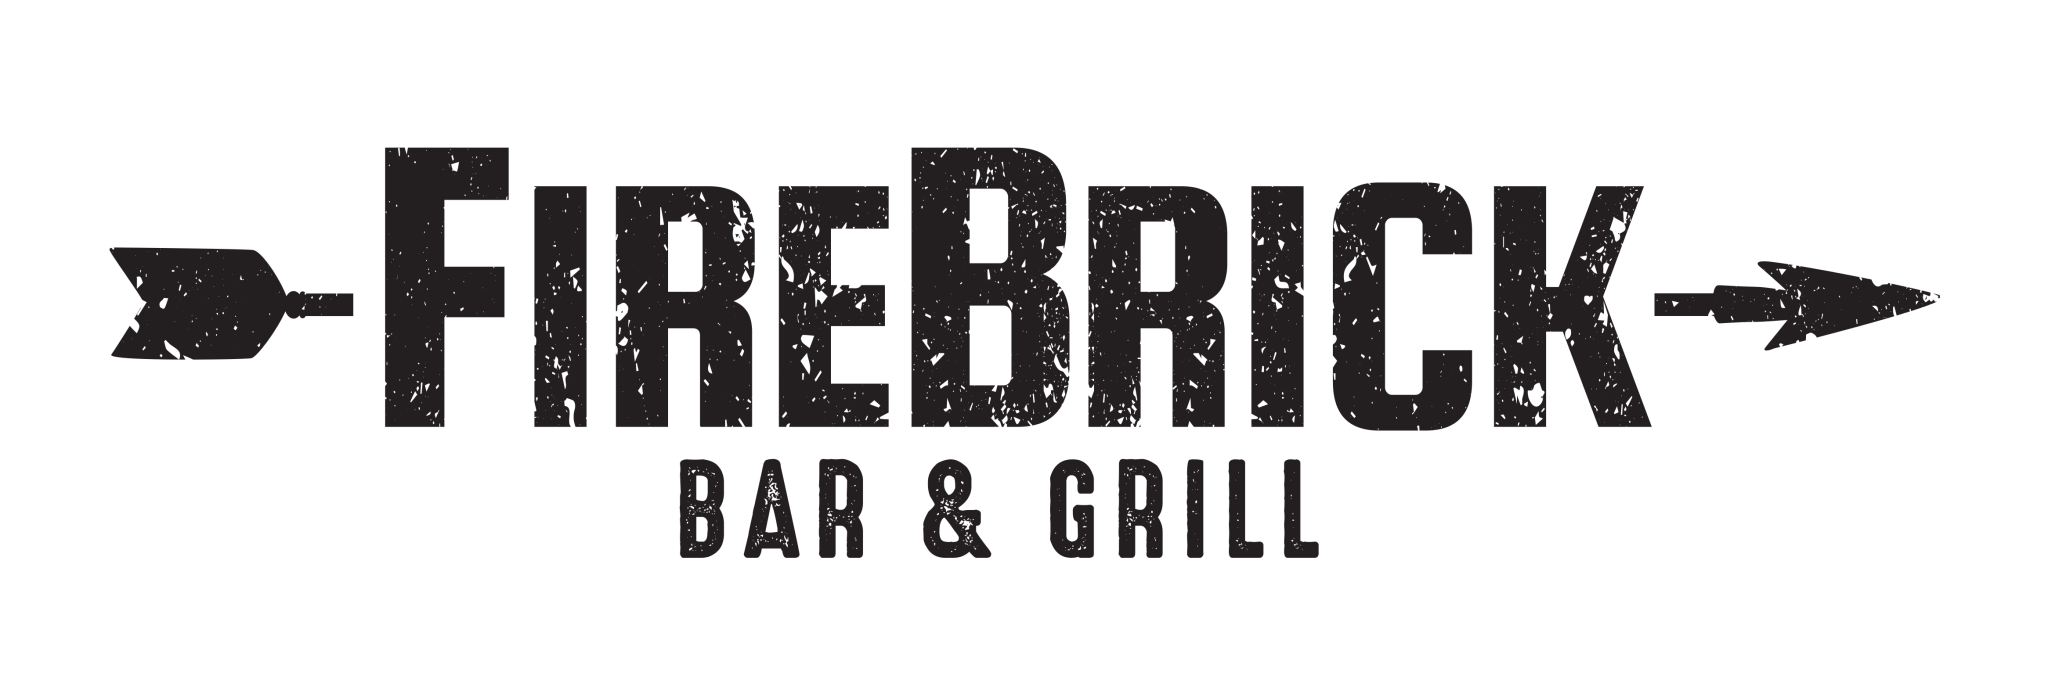 FireBrick Bar & Grill, Restaurant, Iron River MI, Iron County, Young's, pub food, Michigan Craft Beer